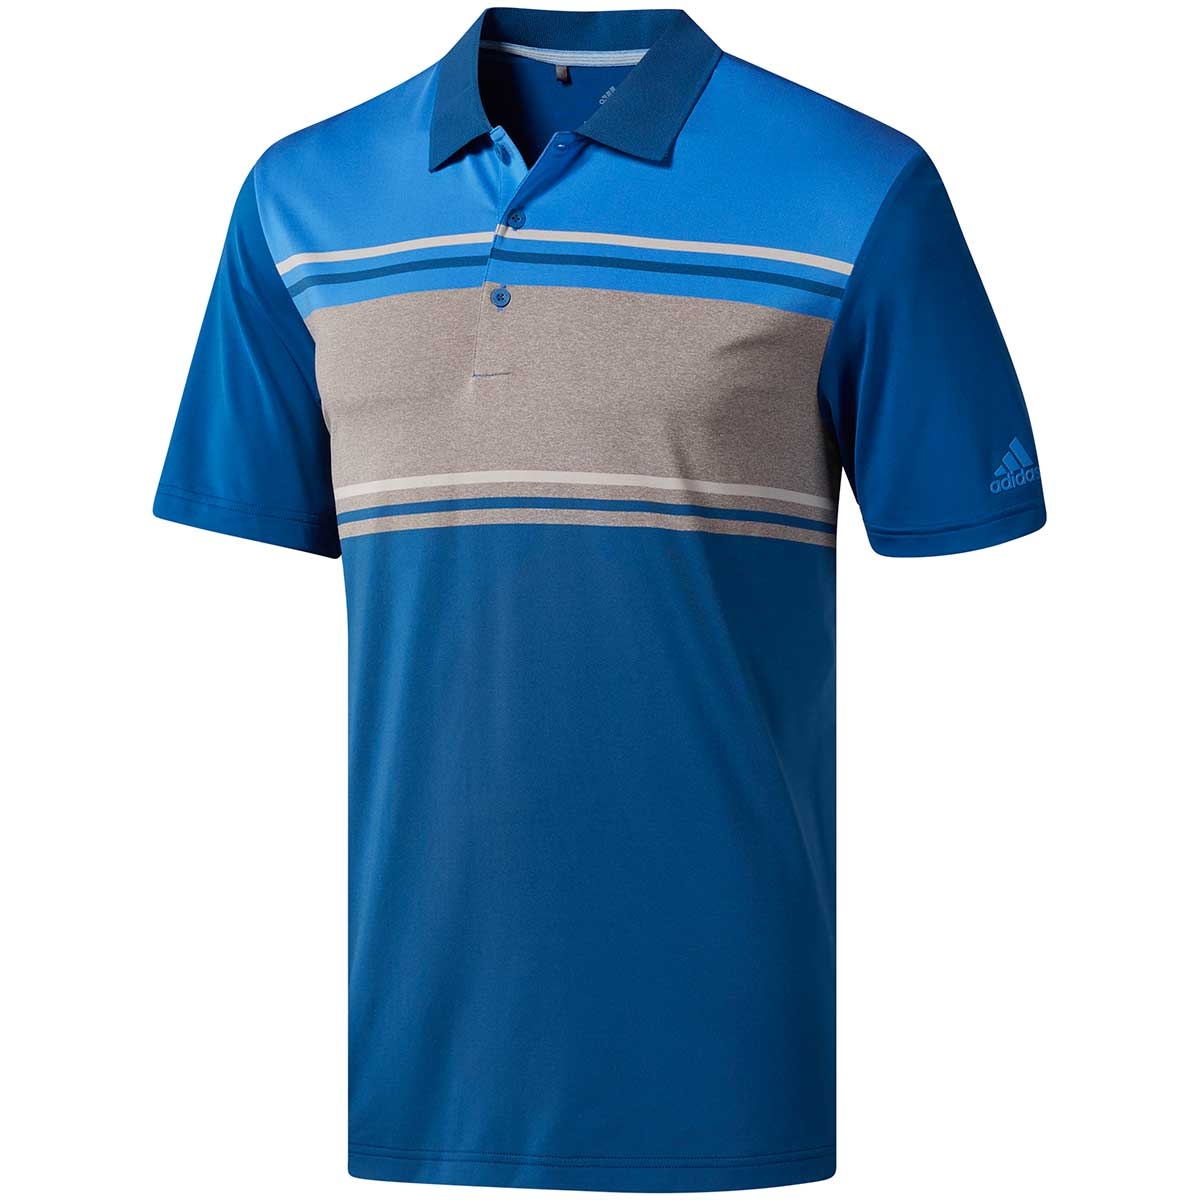 Adidas Ultimate365 Competition Polo Shirt - Dark Marine